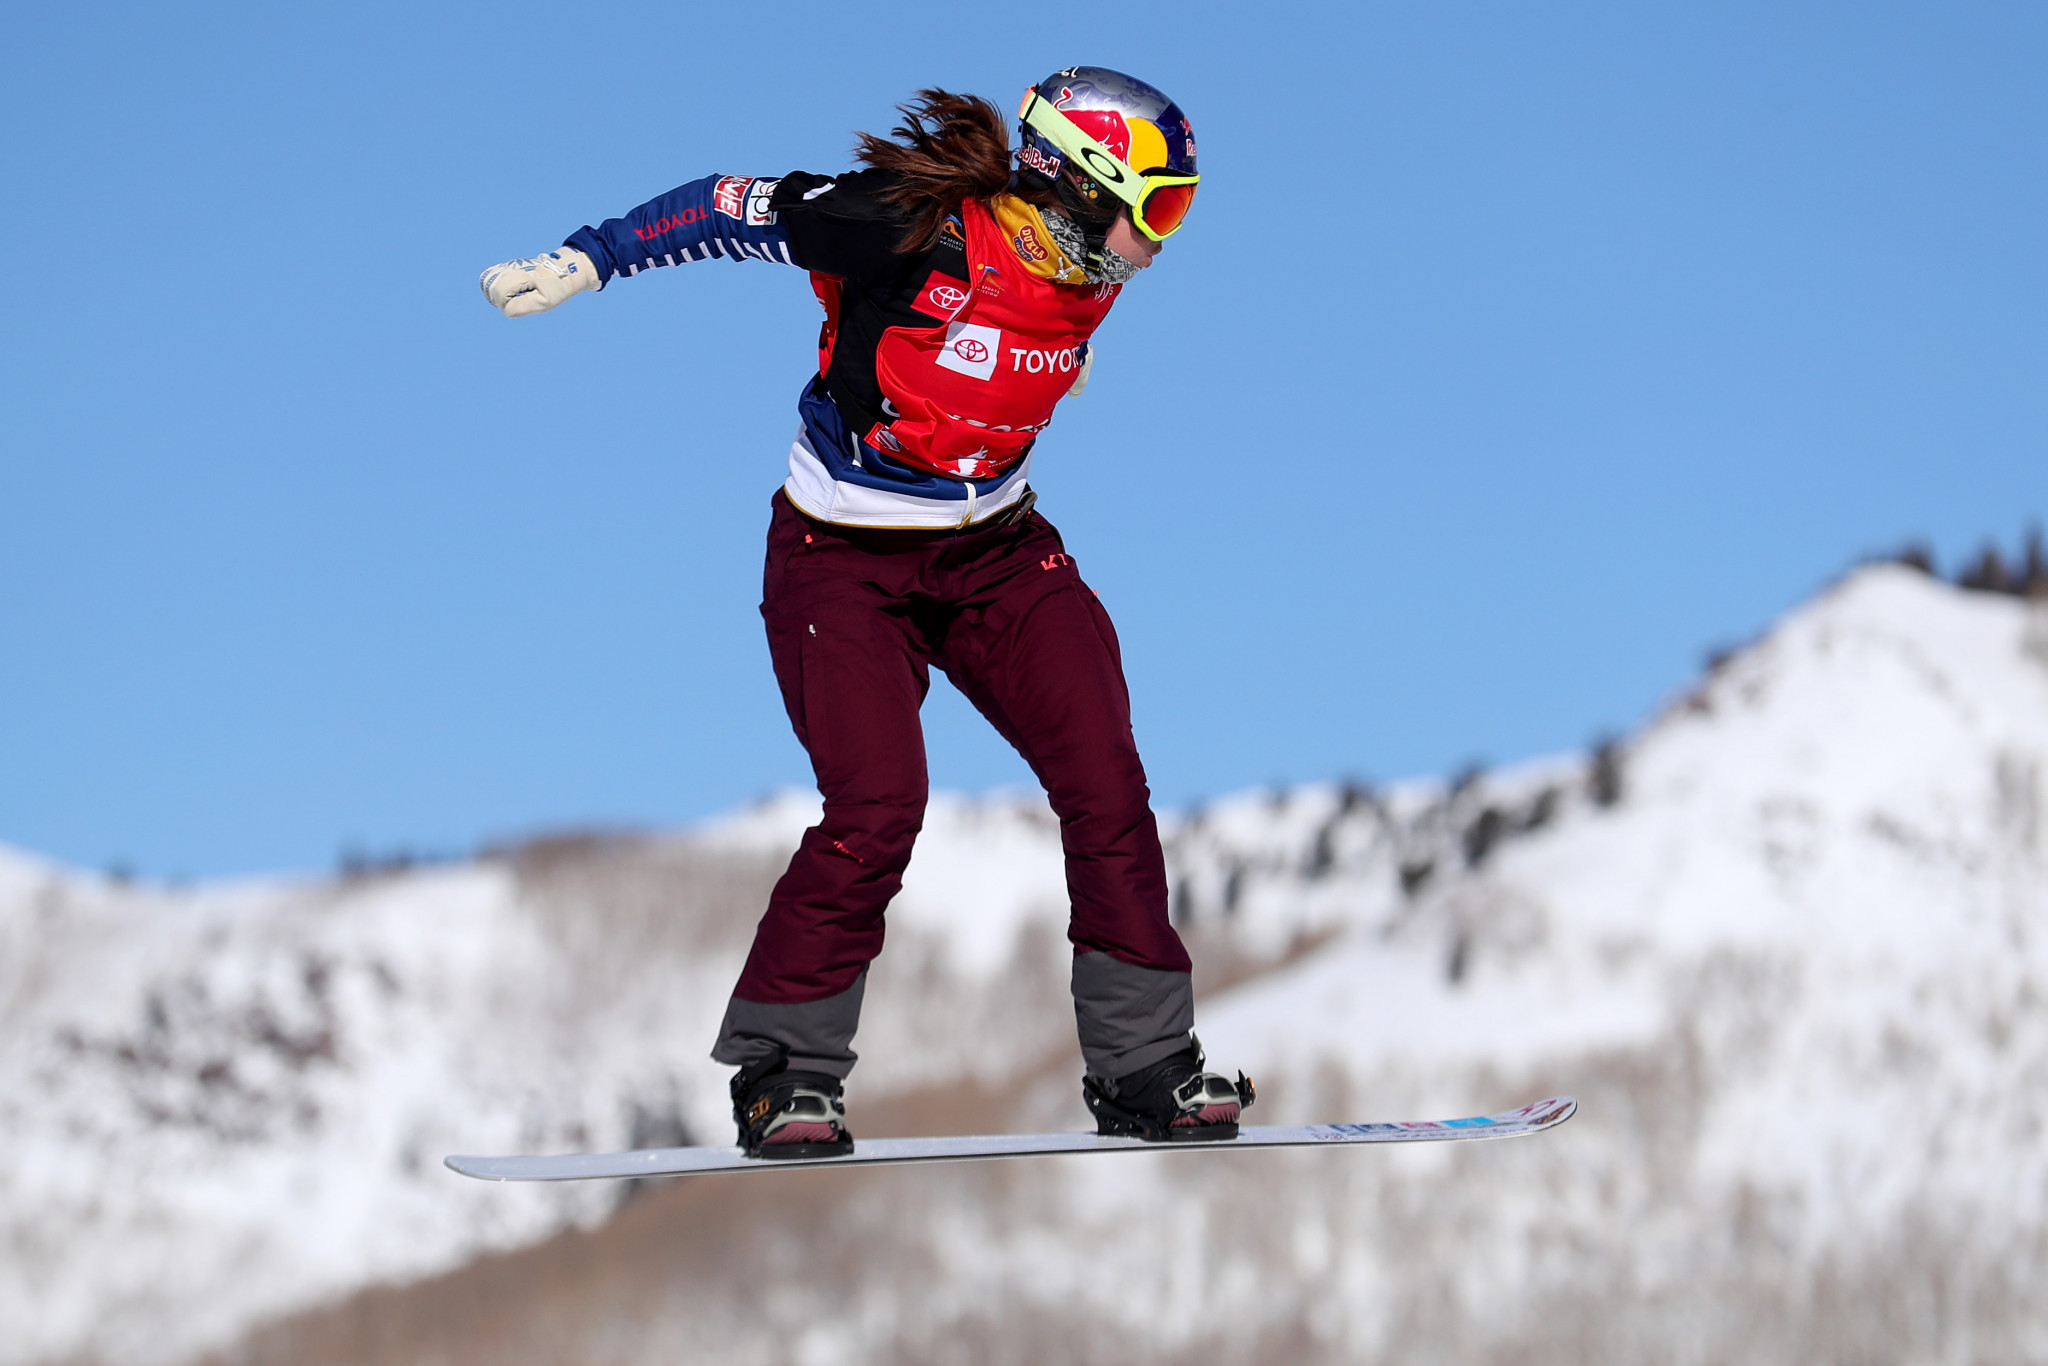 Czech Republic's Eva Samková will be looking to make it two consecutive wins at the FIS Snowboard Cross World Cup in Cervinia ©Getty Images